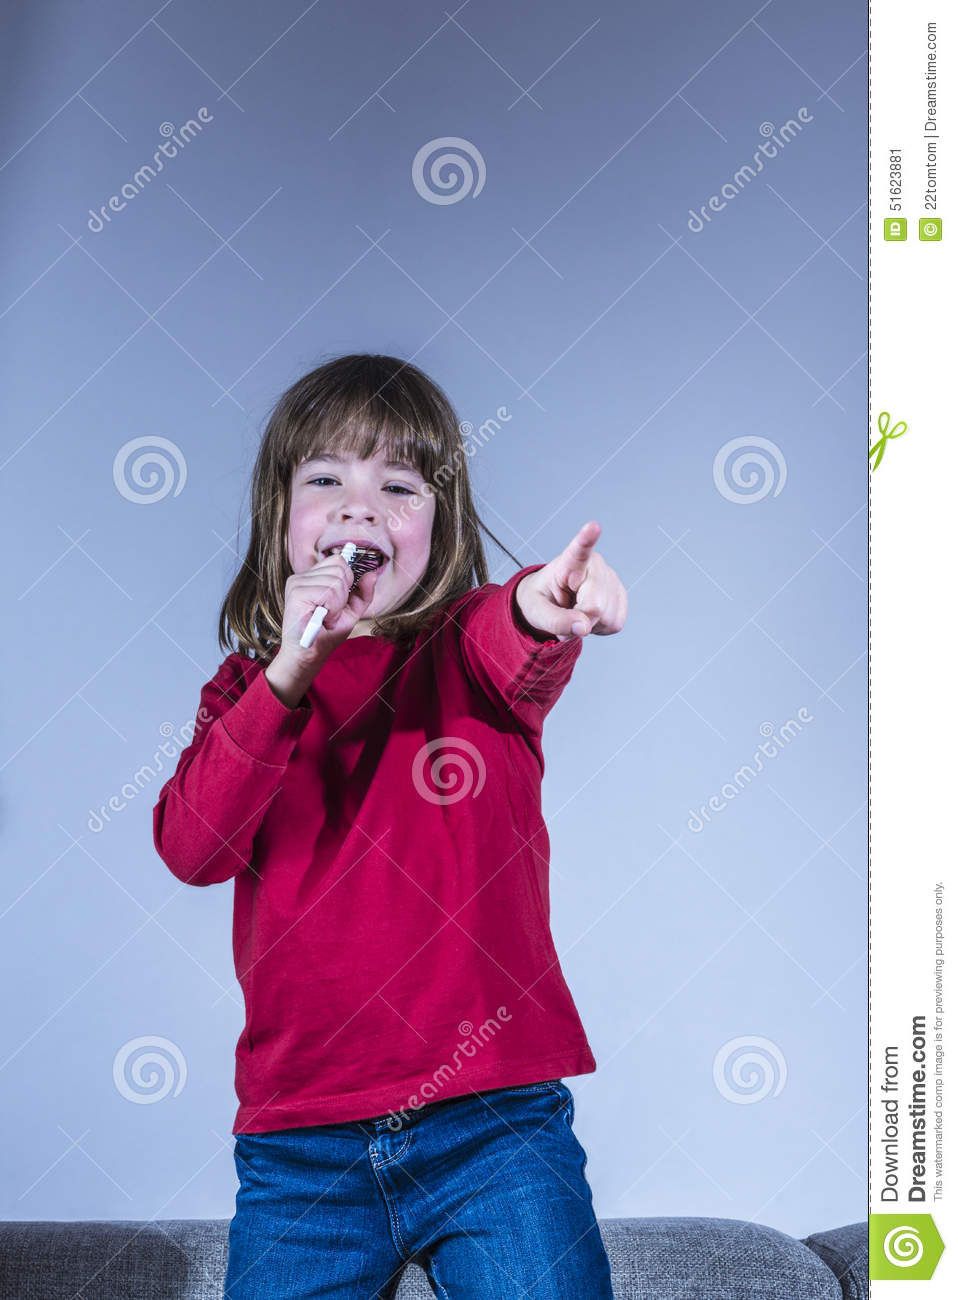 Little Girl Singing Stock Photo - Image: 51623881